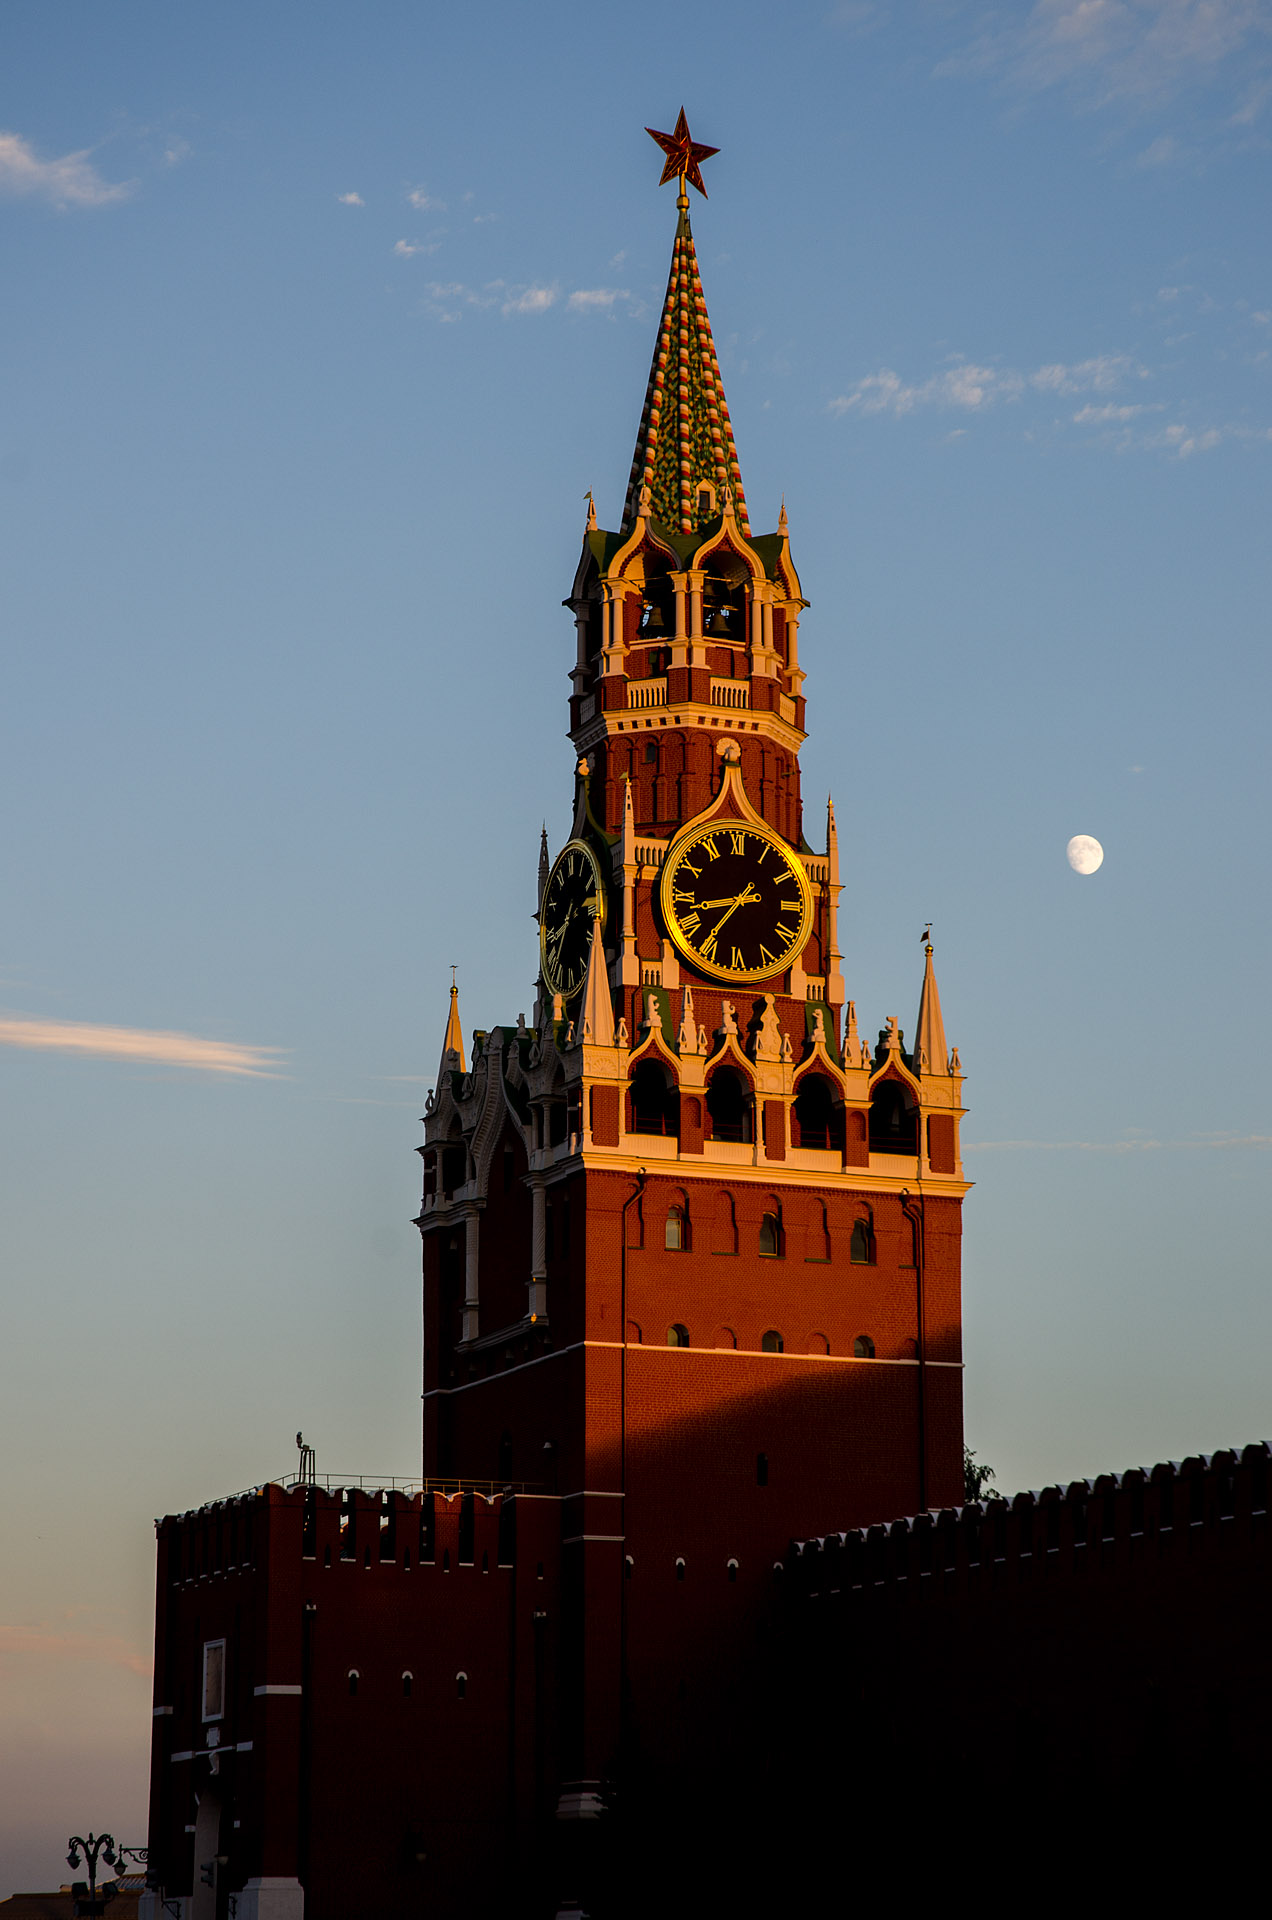 Spasskaya Tower (Savior Tower), Kremlin